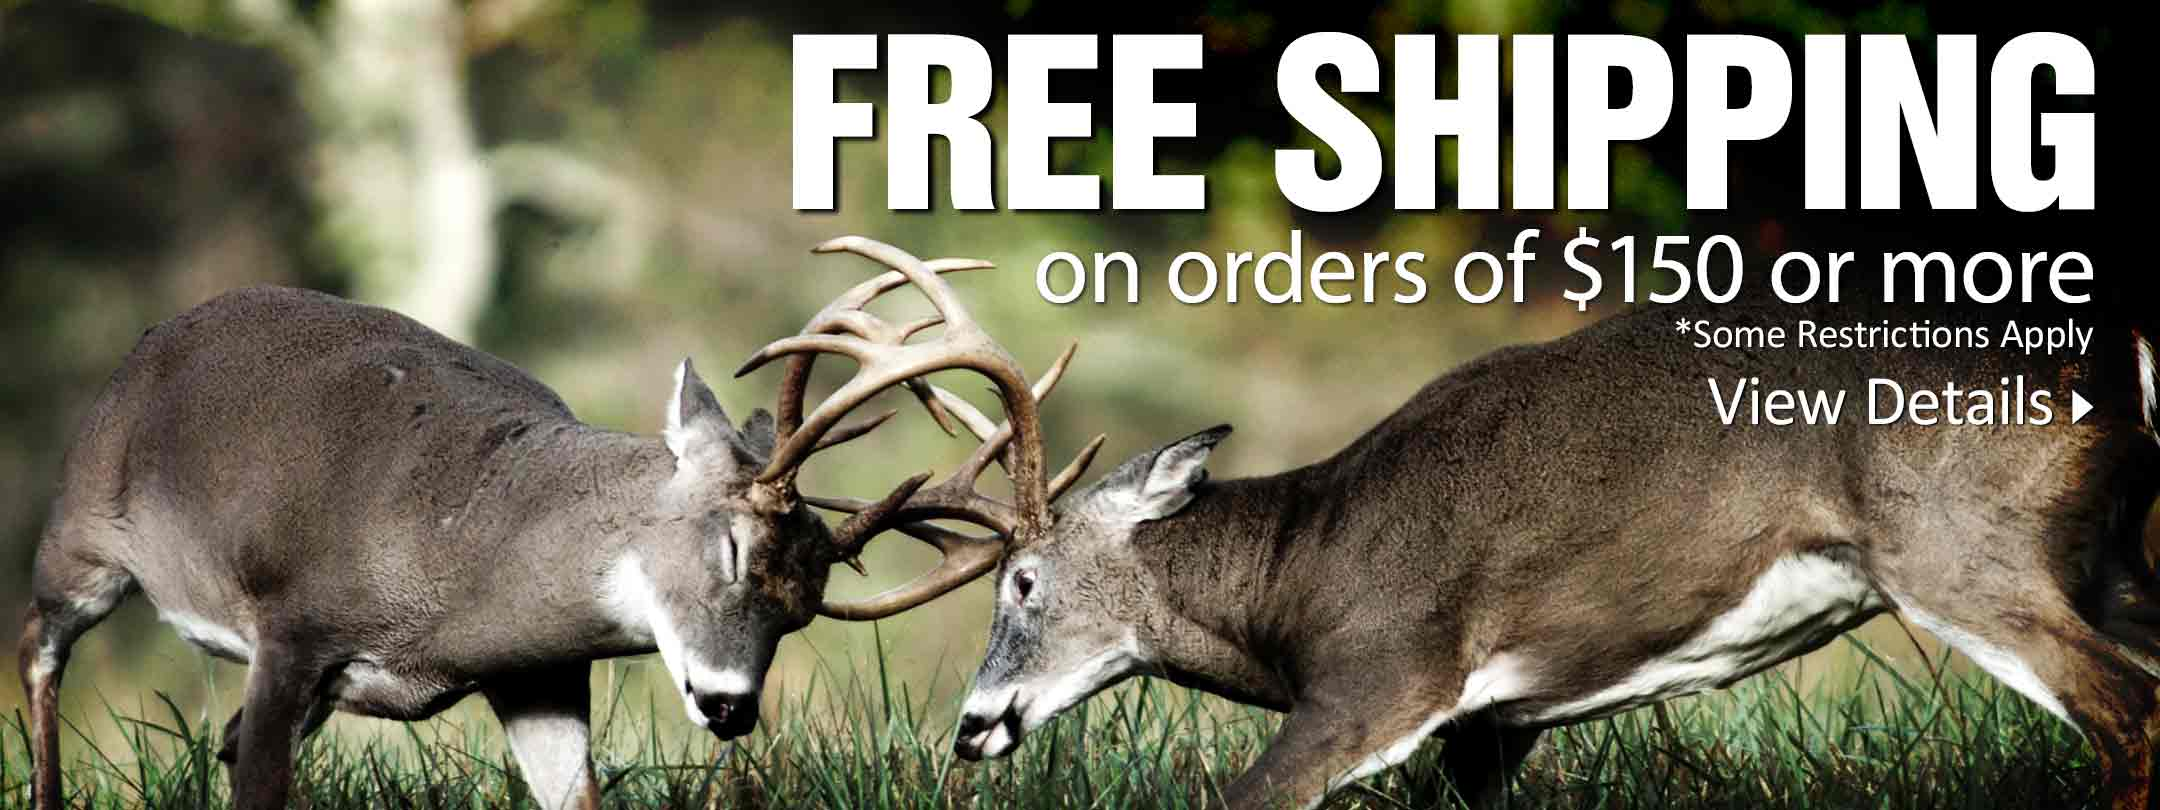 Get Free Shipping on Orders Over $150